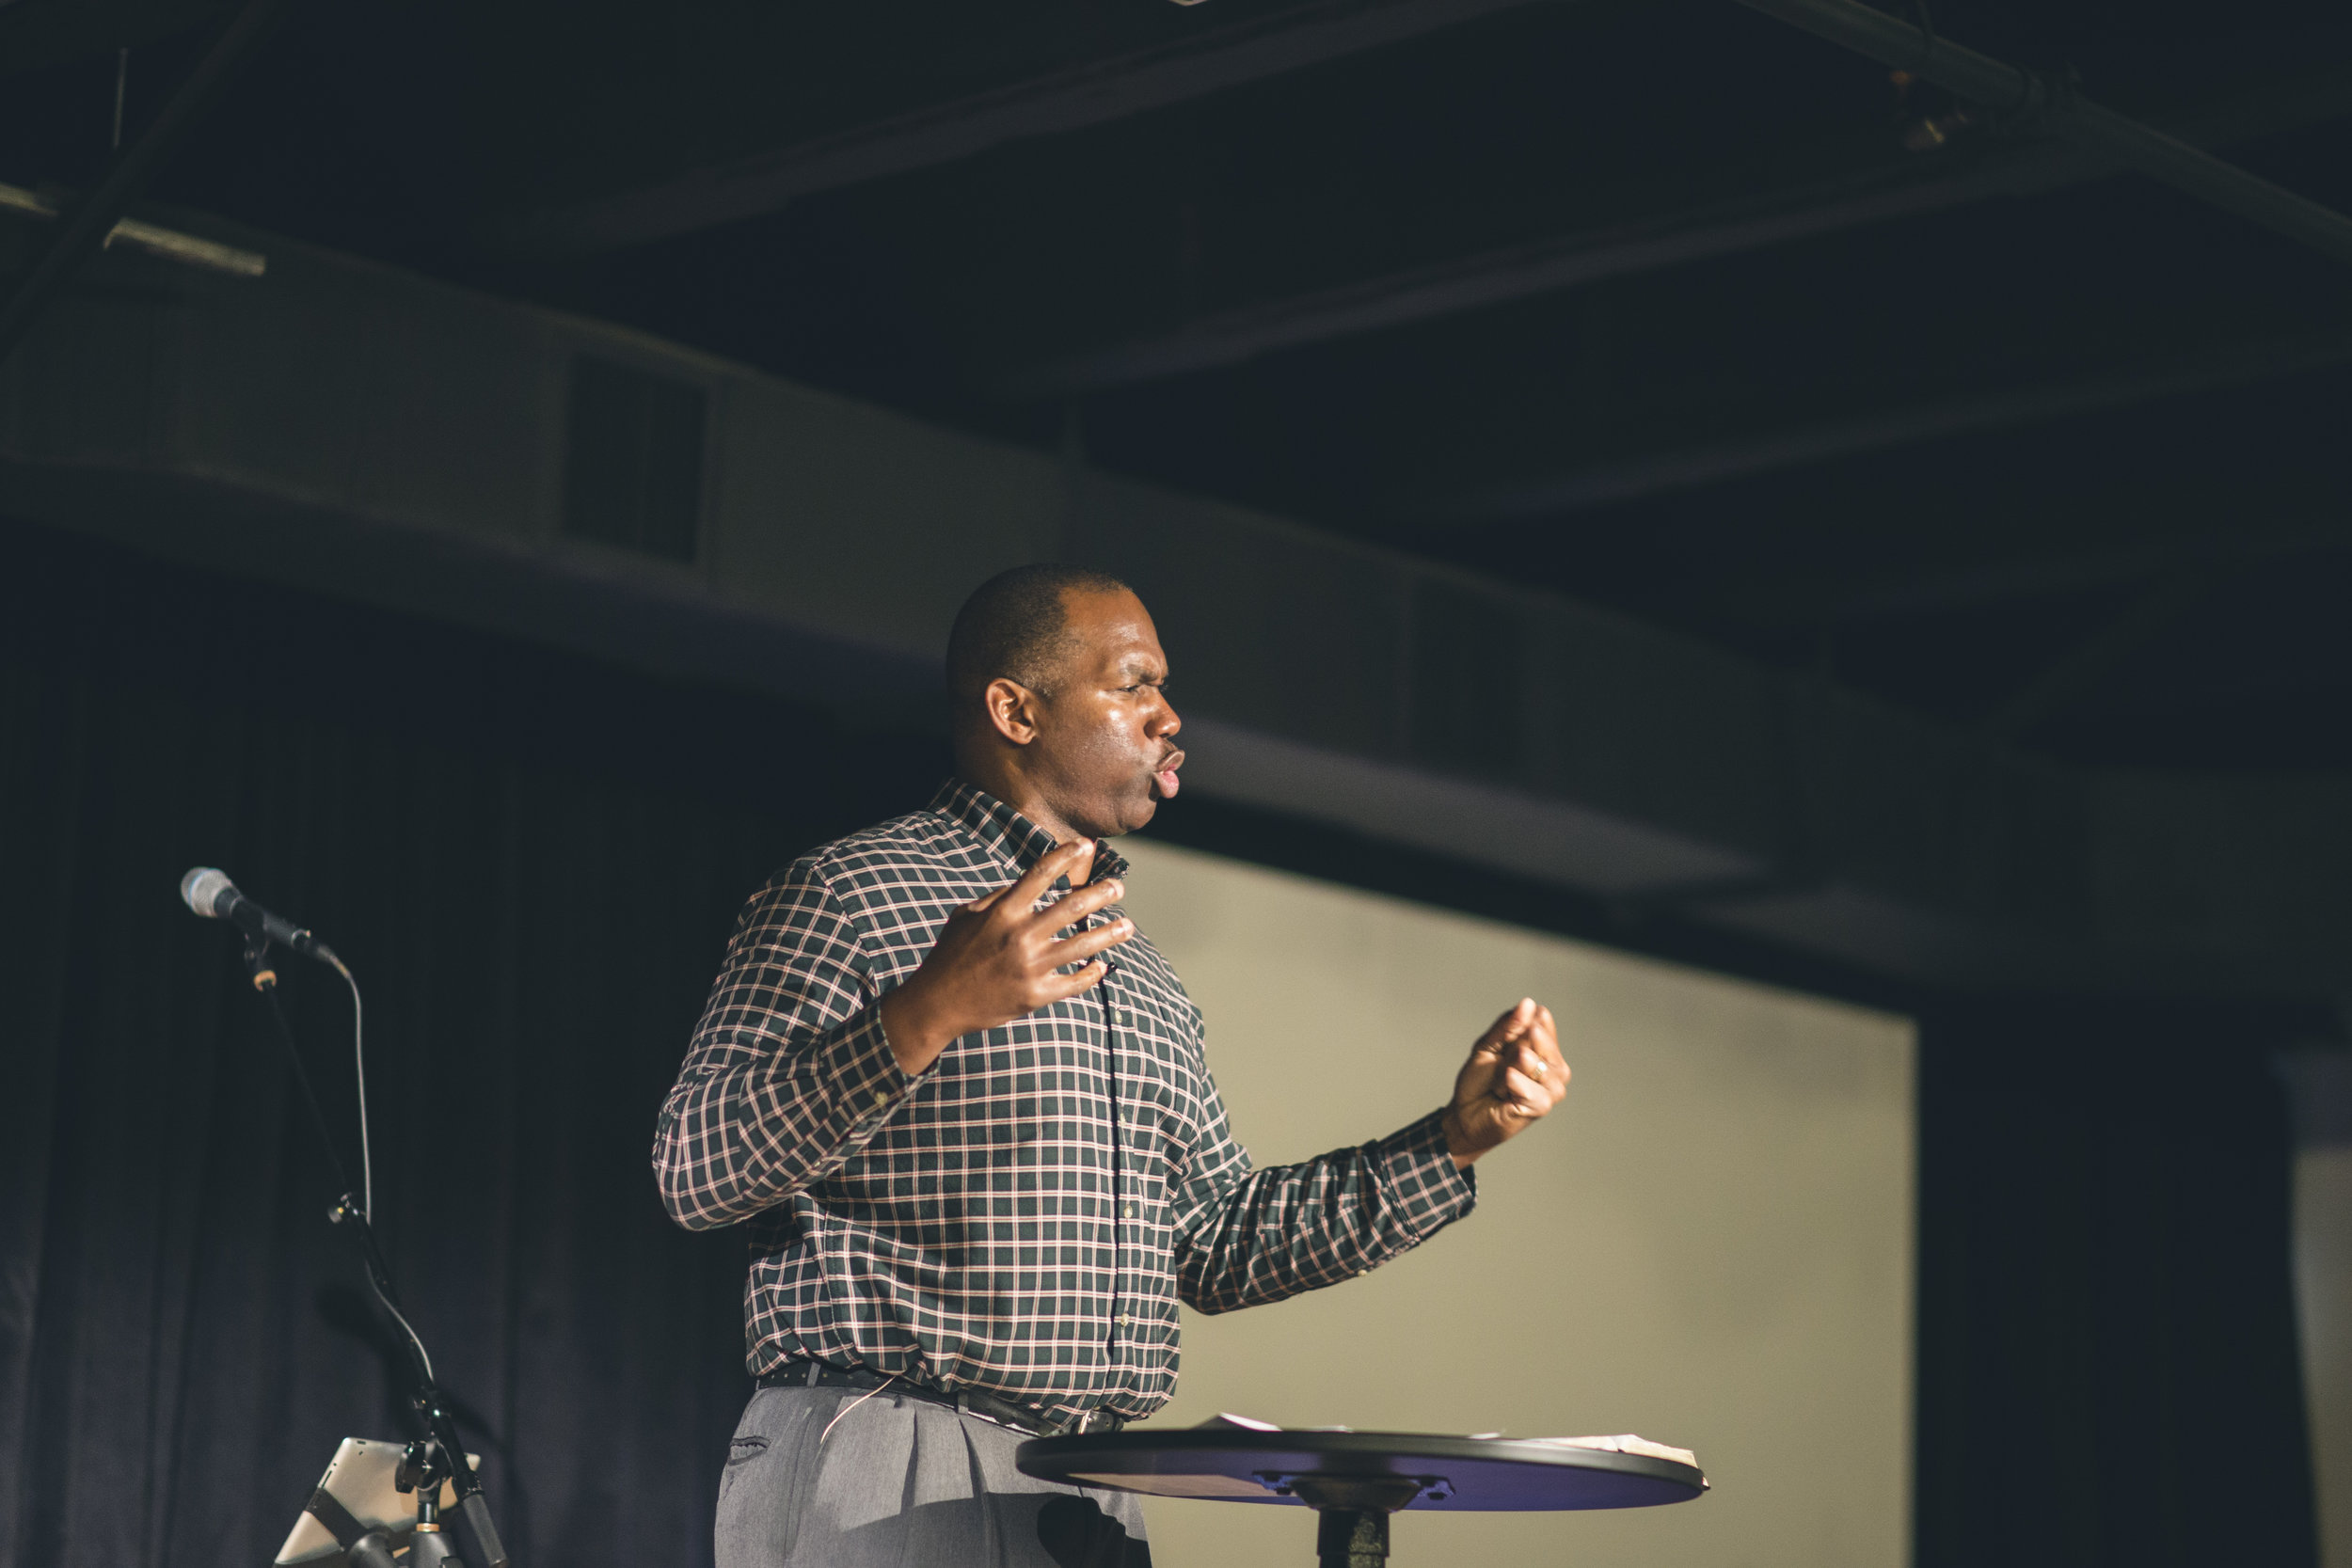 Special Guest: Vincent Carpenter - What a blessing to have Vincent Carpenter on Sunday!